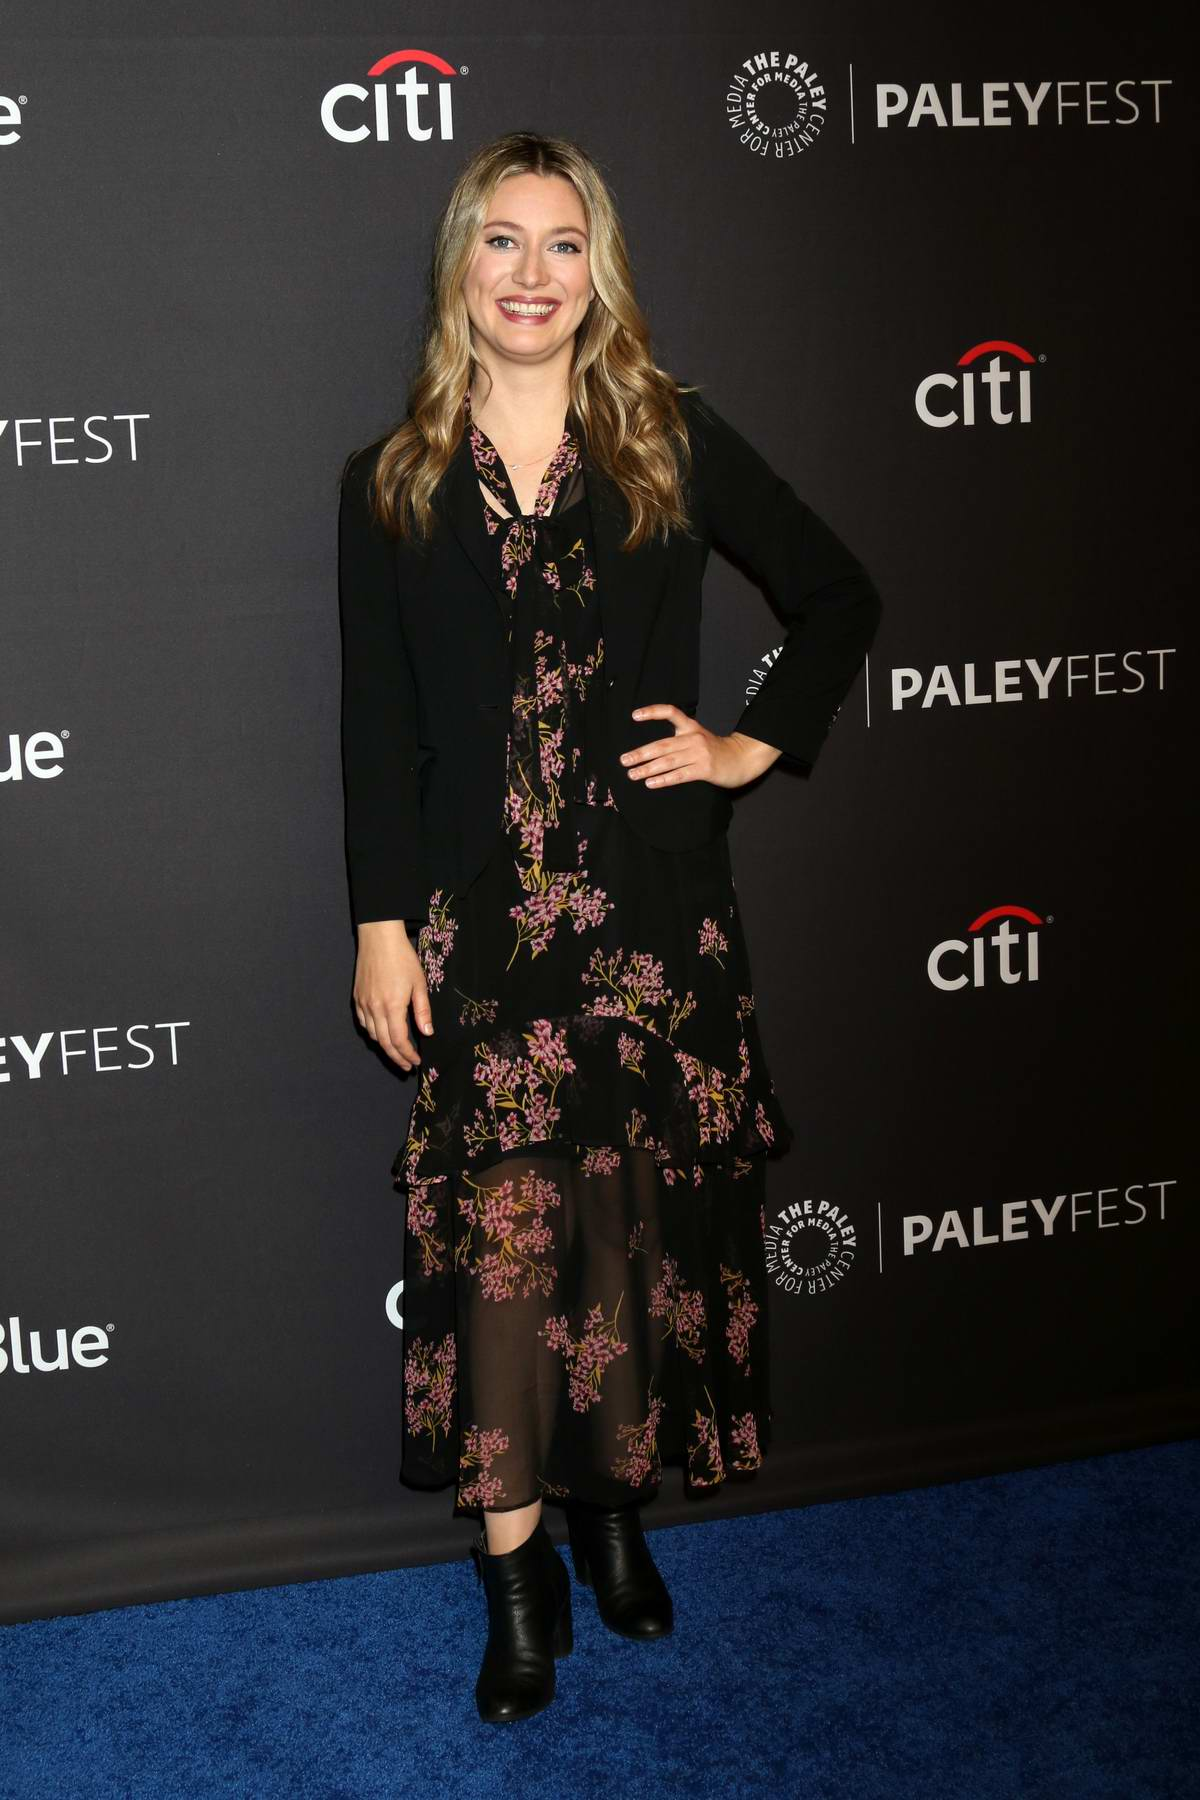 Zoe Perry attends 'The Big Bang Theory' and 'Young Sheldon' TV show presentation at Paleyfest in Los Angeles